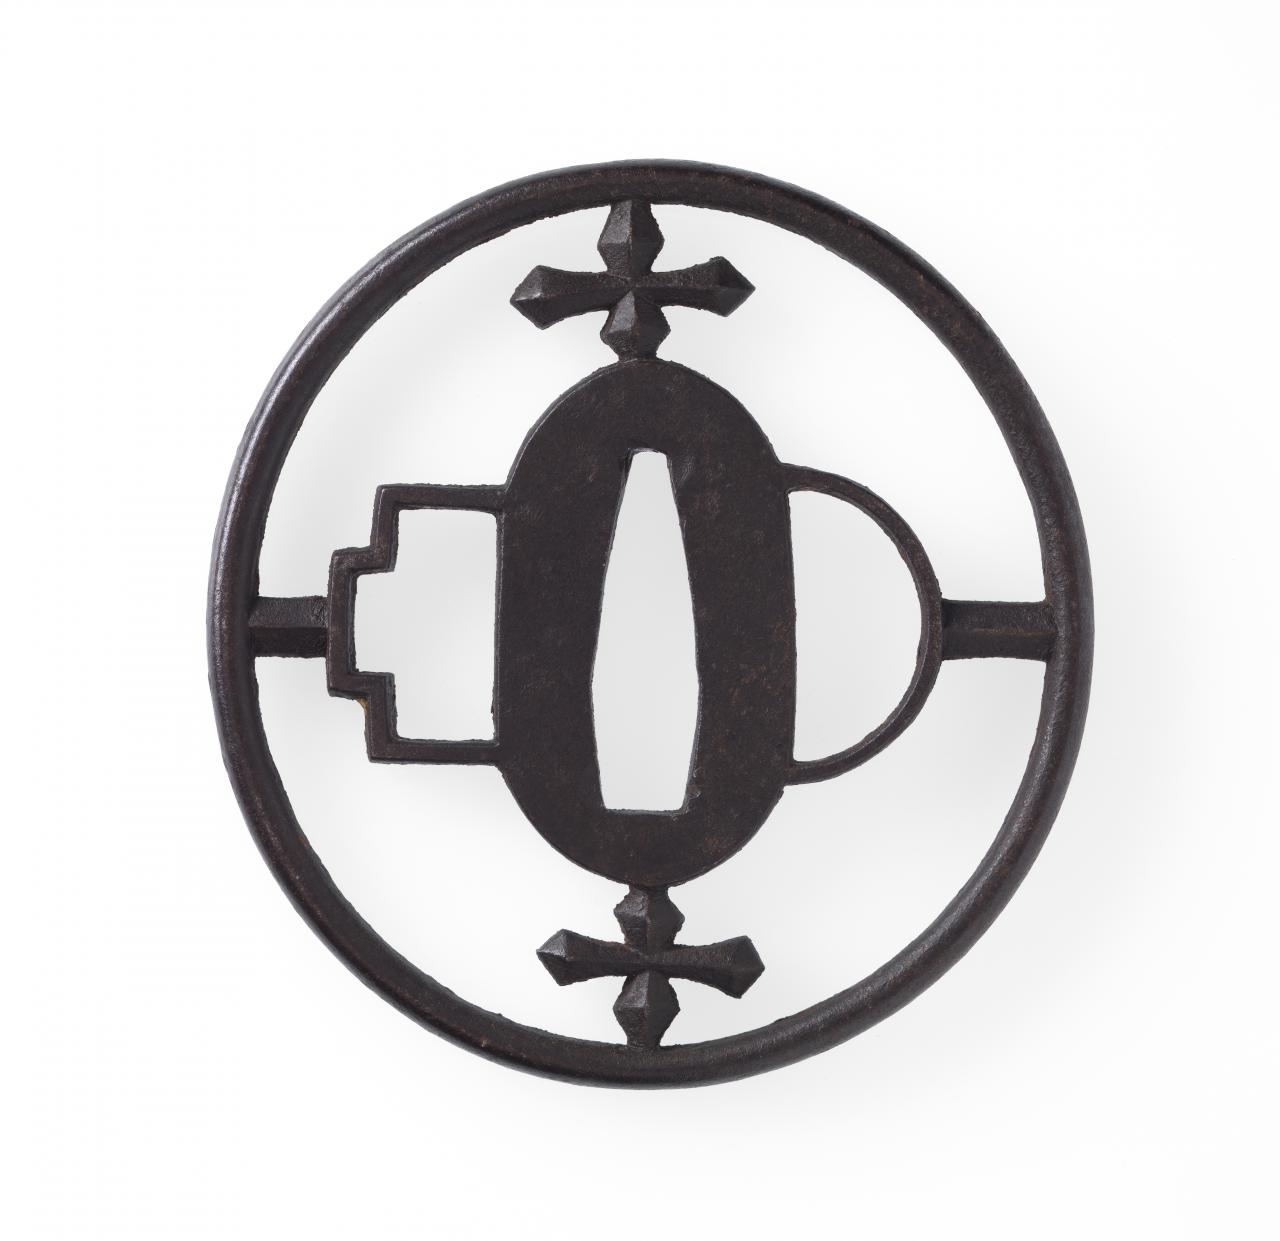 Sword guard with cross design